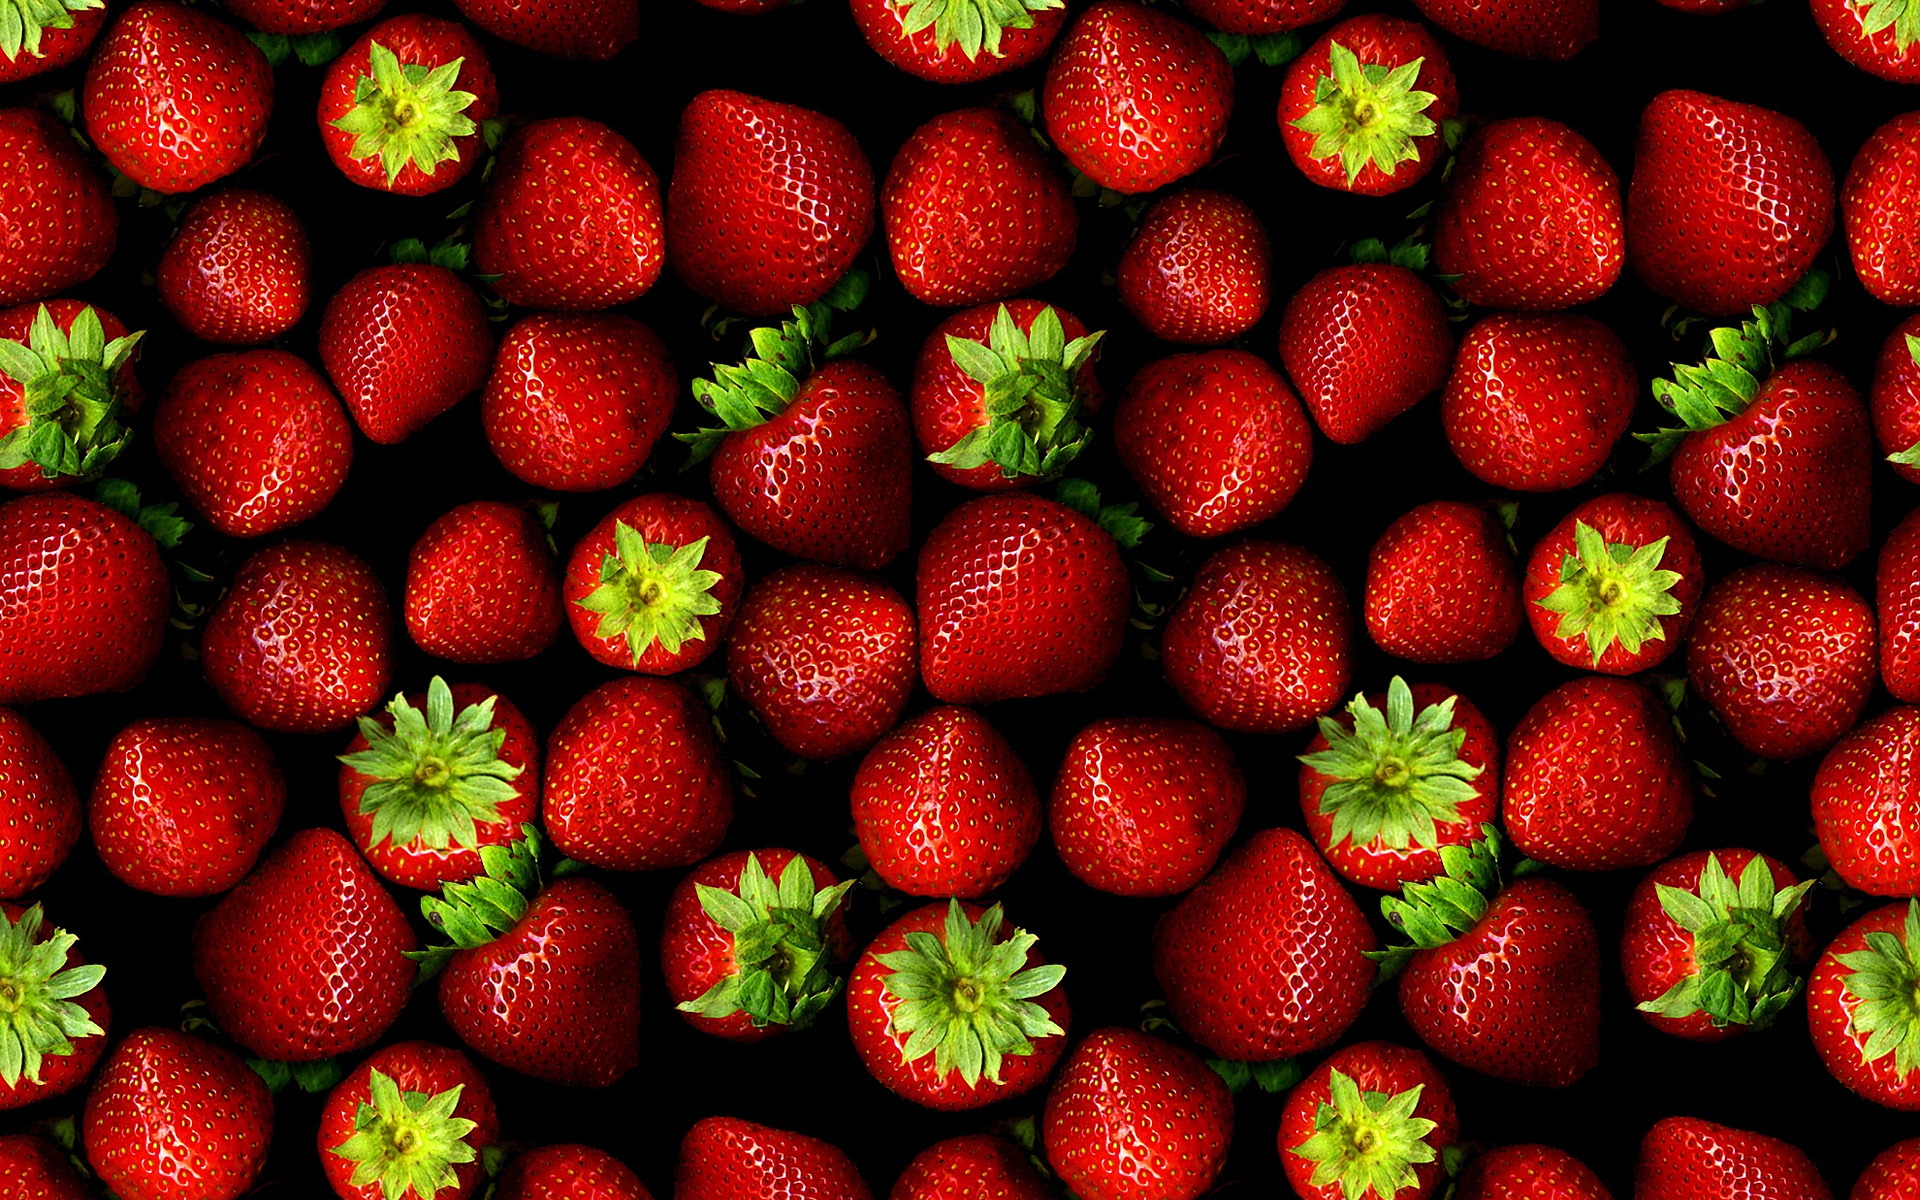 strawberry hd wallpapers cool desktop background images widescreen